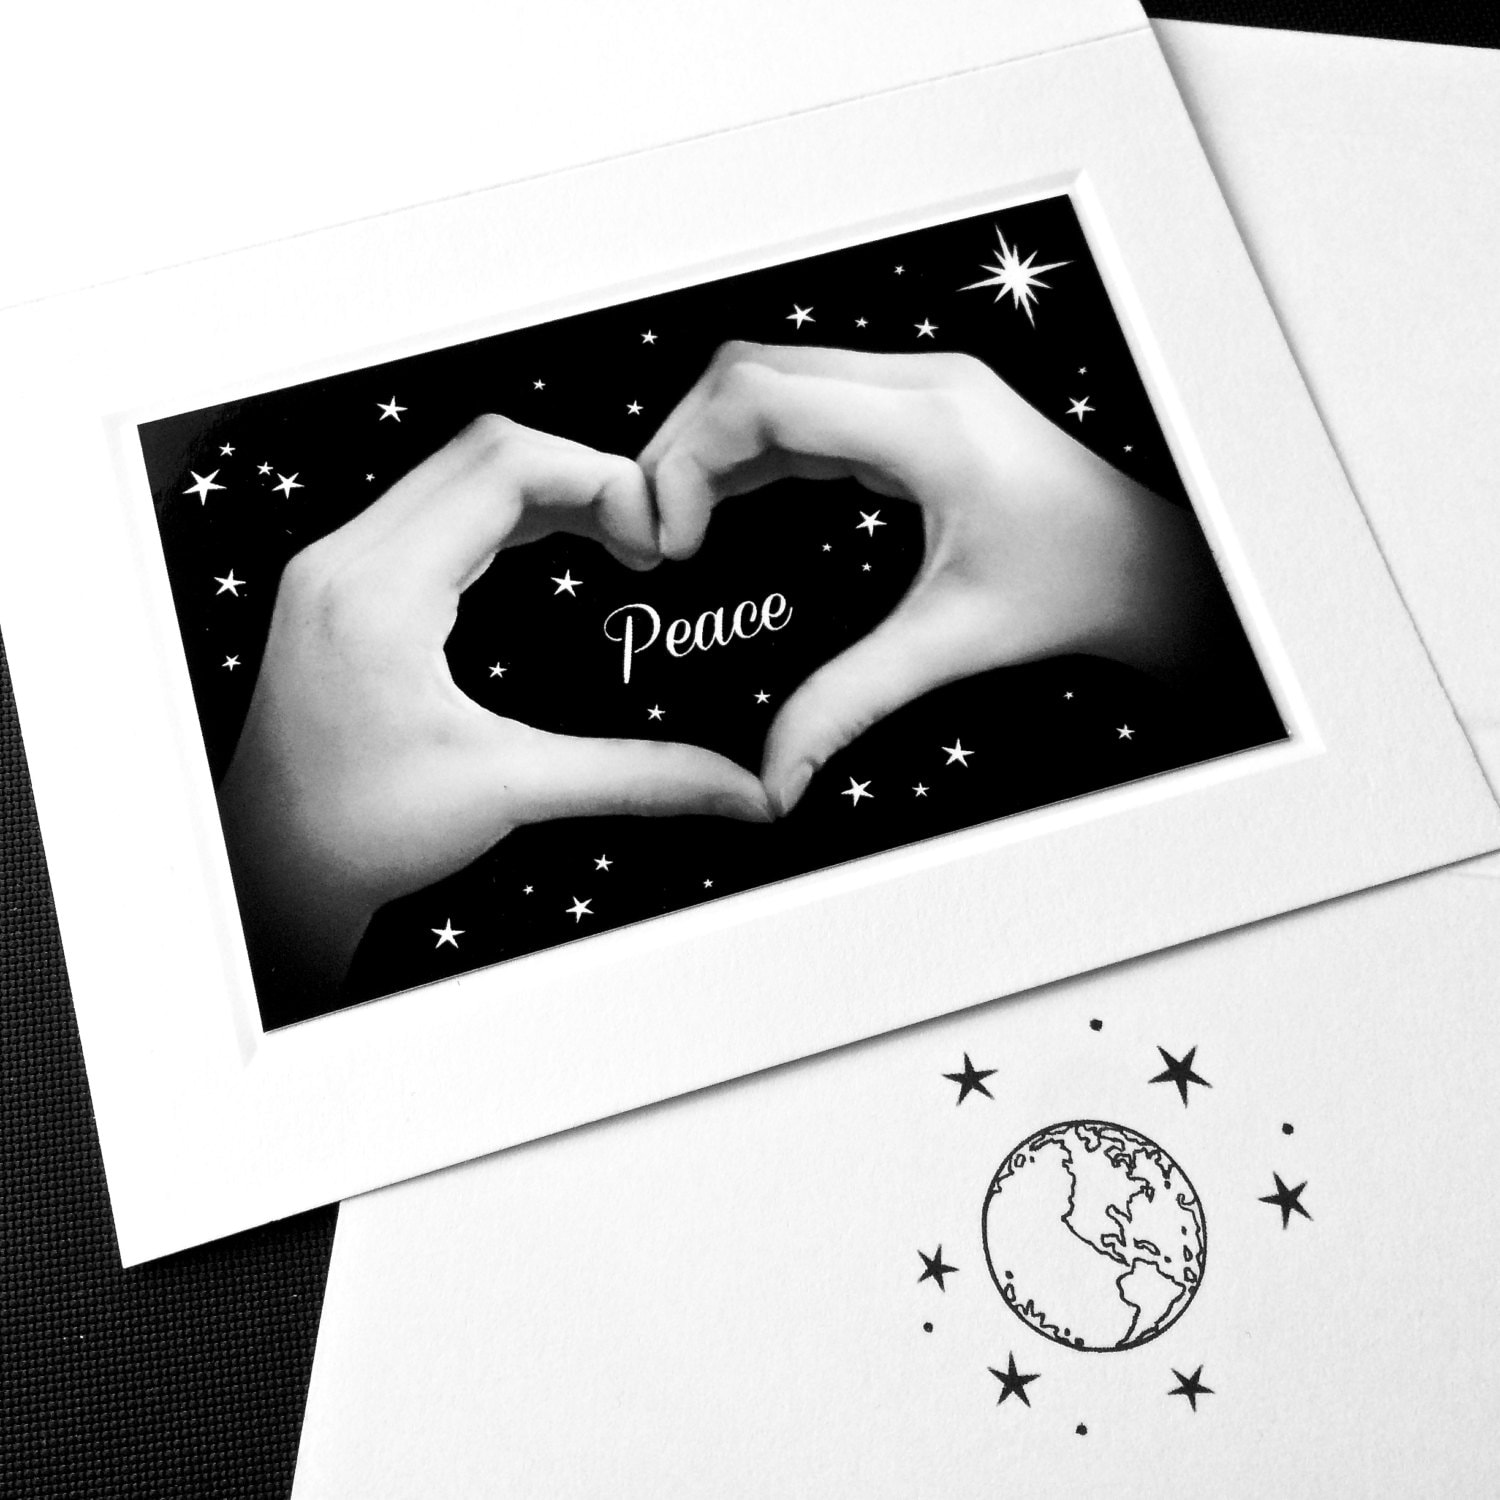 Peace on earth heart hands sign language card black white photo peace on earth heart hands sign language card black white photo holiday and new years card individual greeting cards and boxed sets m4hsunfo